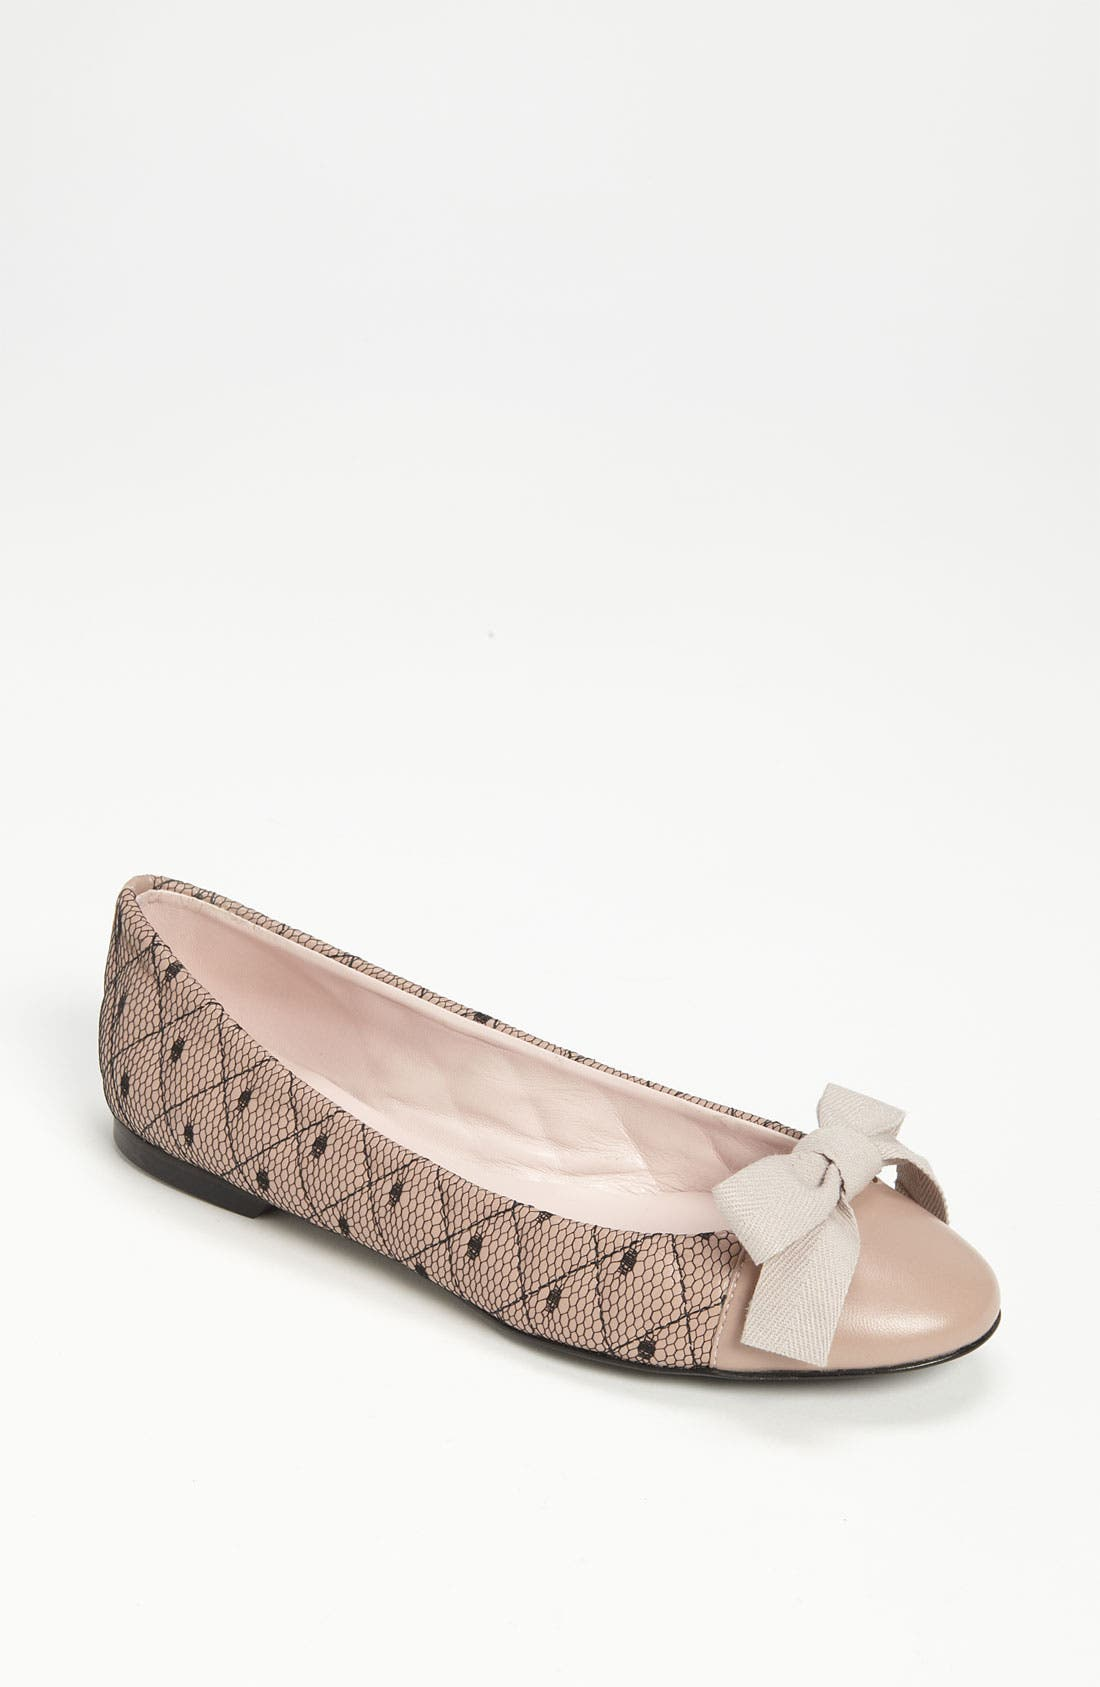 Alternate Image 1 Selected - RED Valentino 'Bow' Flat